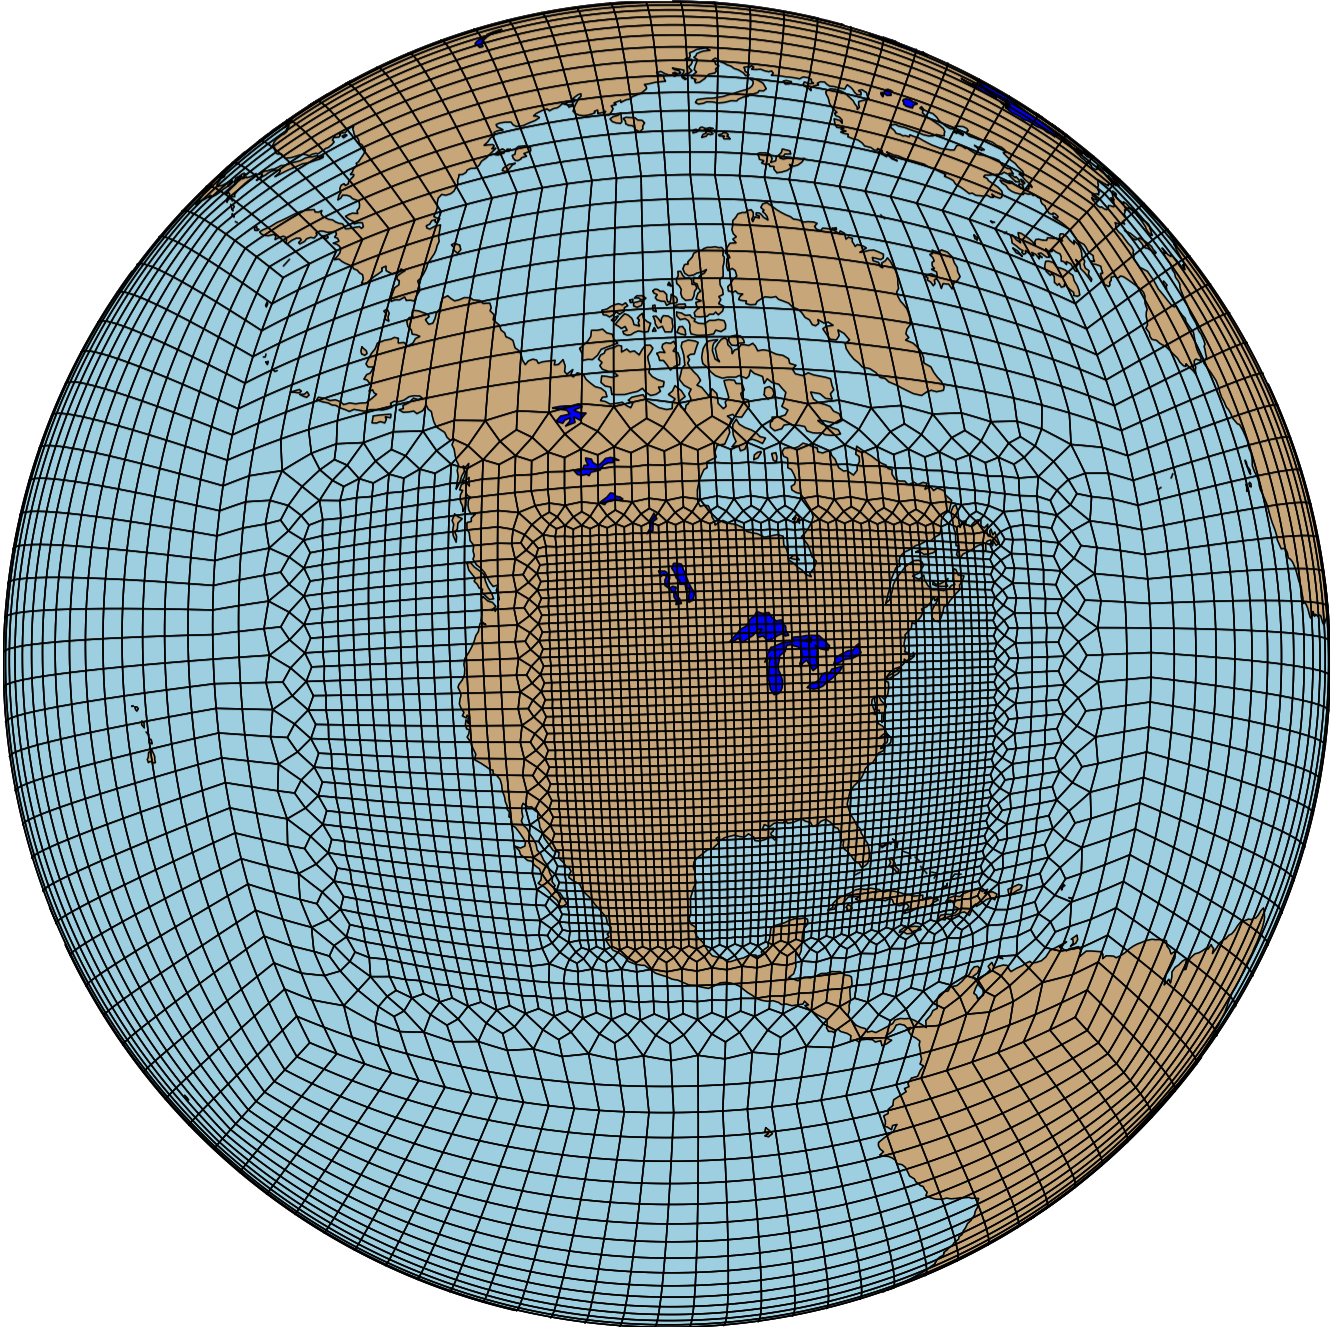 An example of a variable-resolution global grid with enhanced resolution over the United States